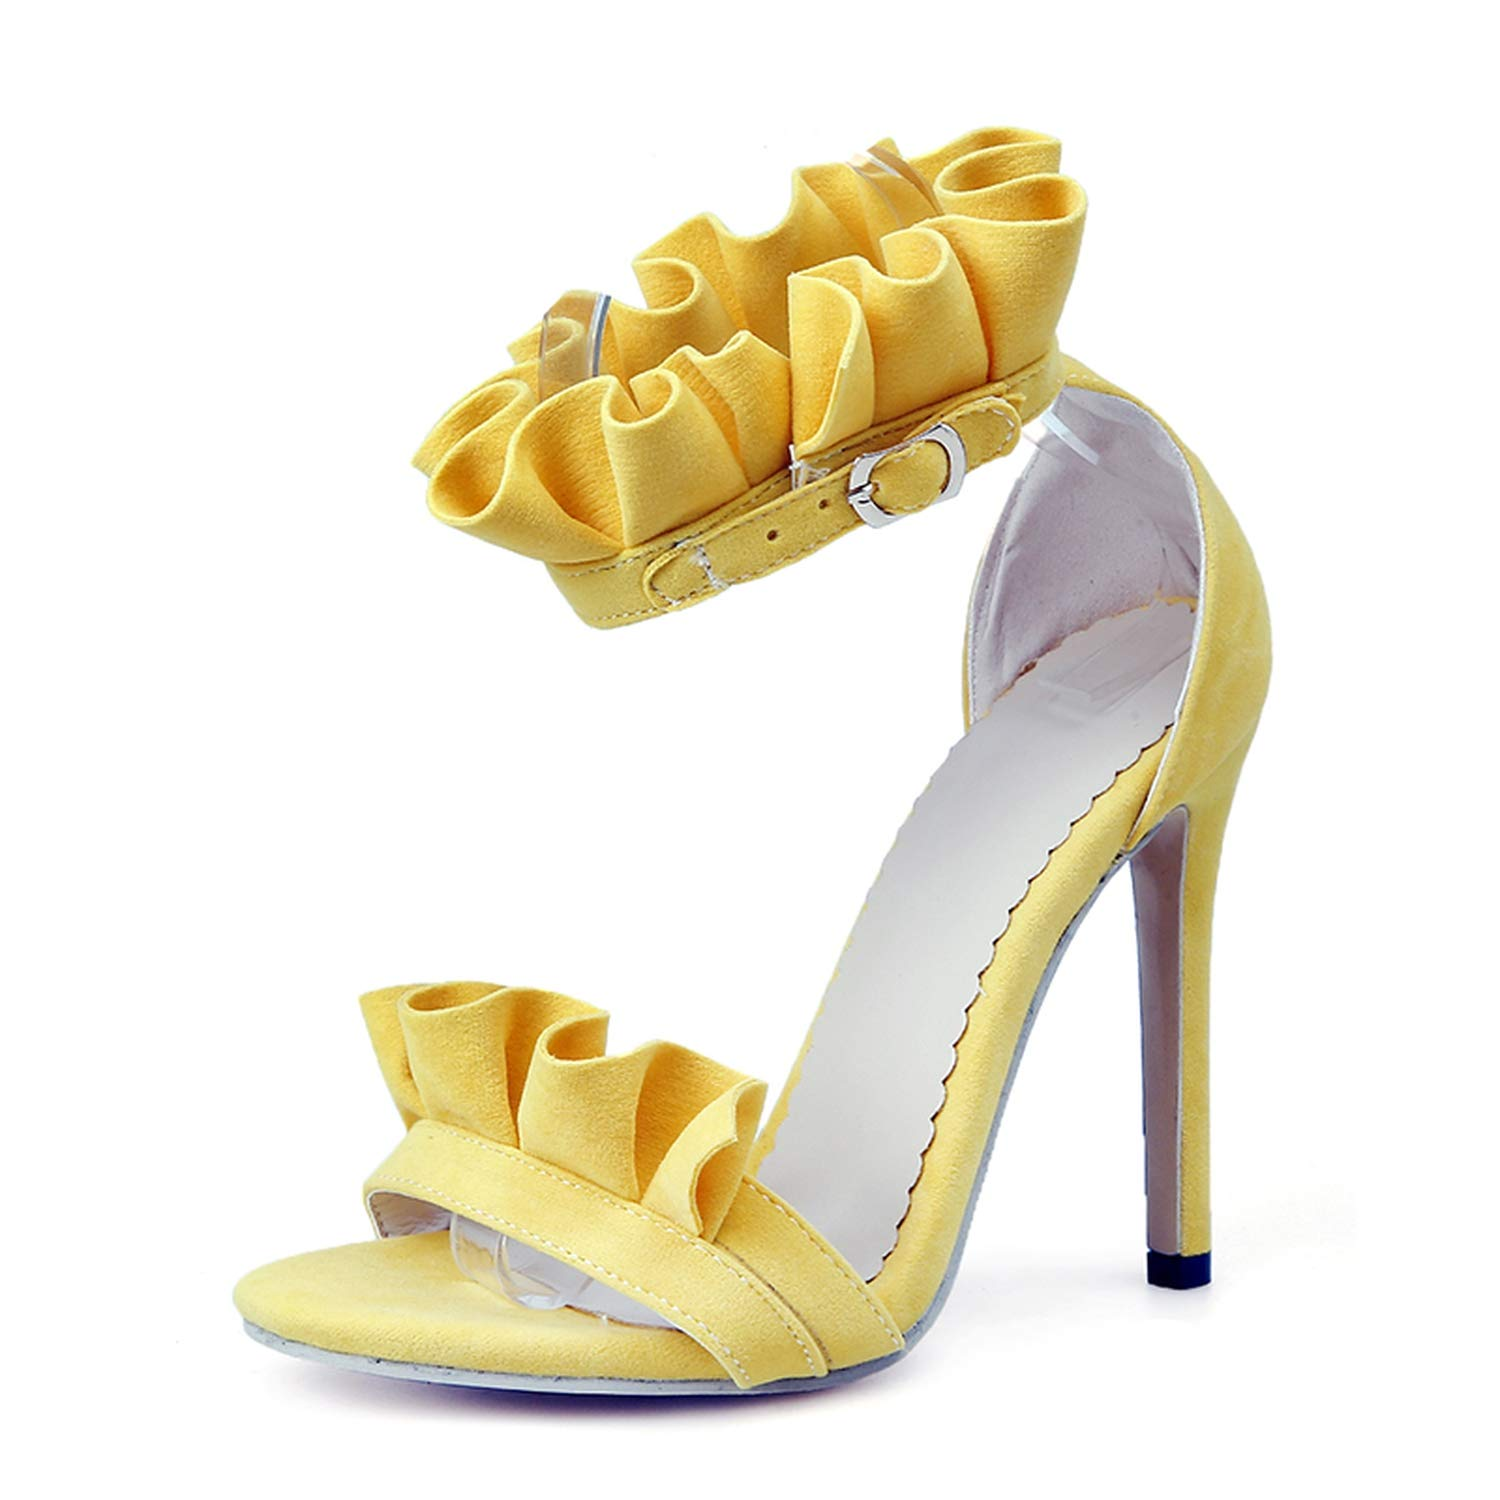 YELLOW Thin High Heel Sandals Women Sexy Ruffles Open Toe Buckle Strap Party Dress shoes Woman